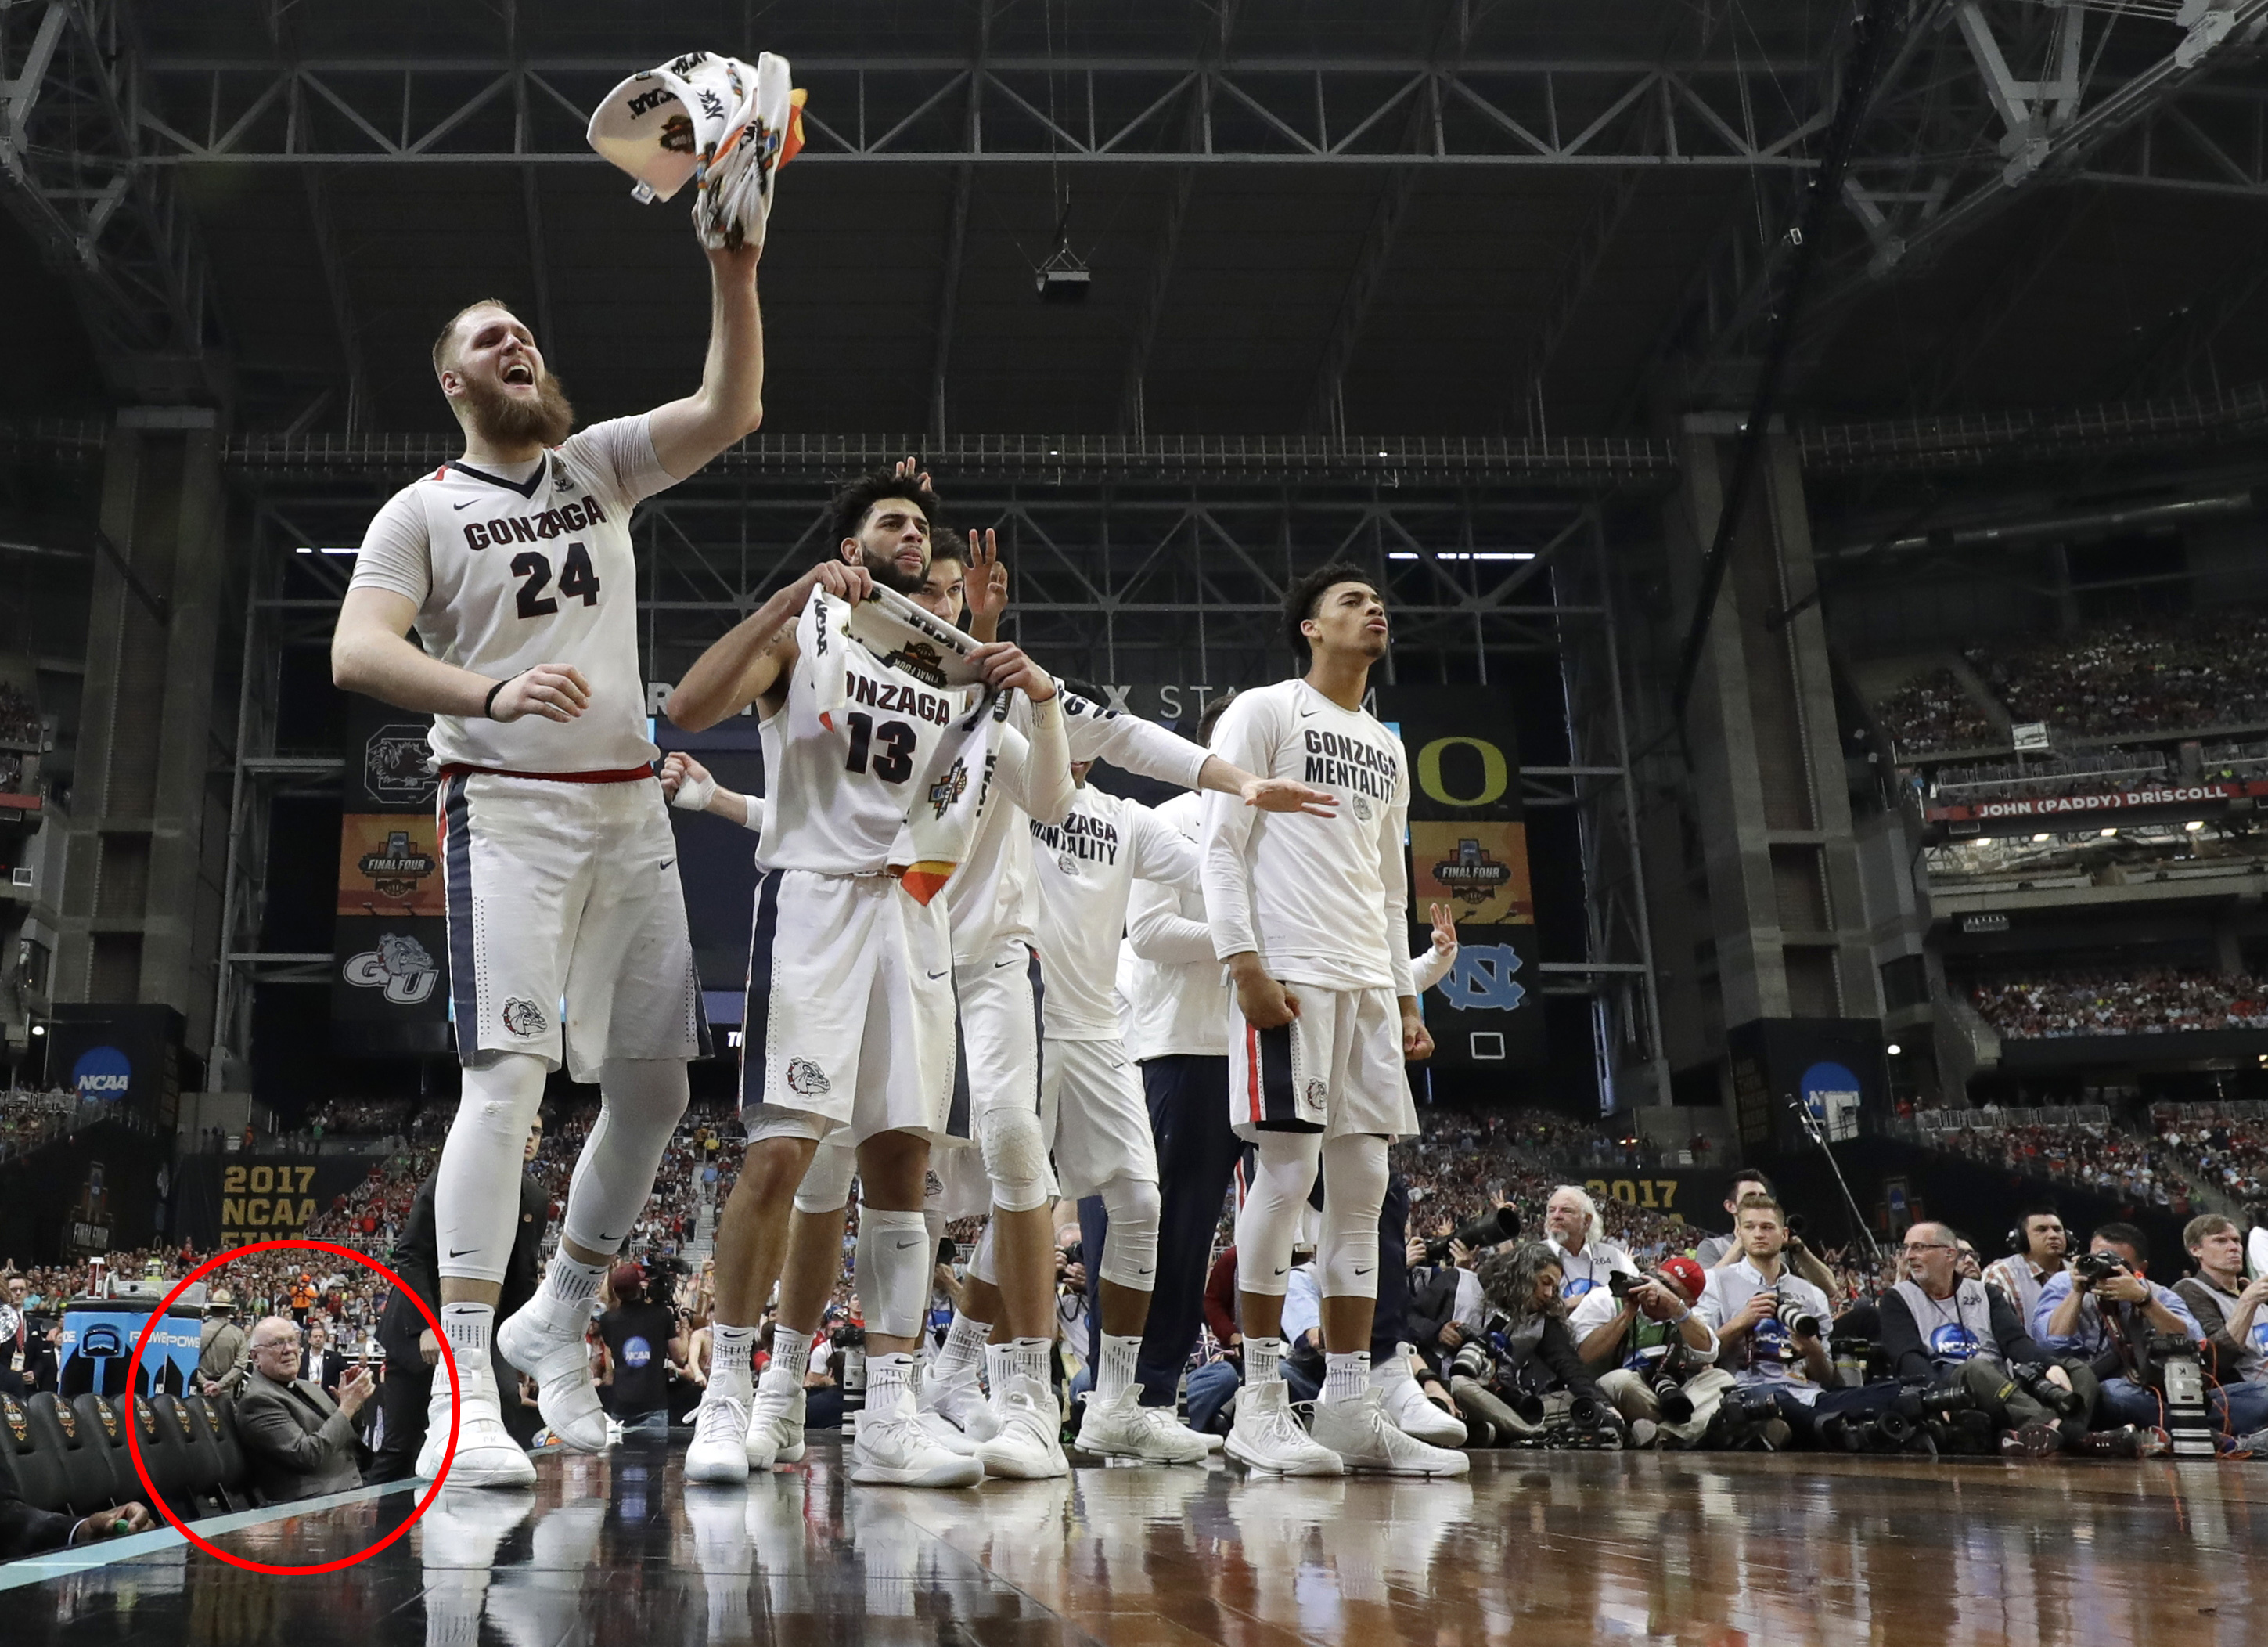 8124acce10e Father Frank Case, seated at left, cheers on the Gonzaga University  Bulldogs at the 2017 Final Four NCAA college basketball tournament.